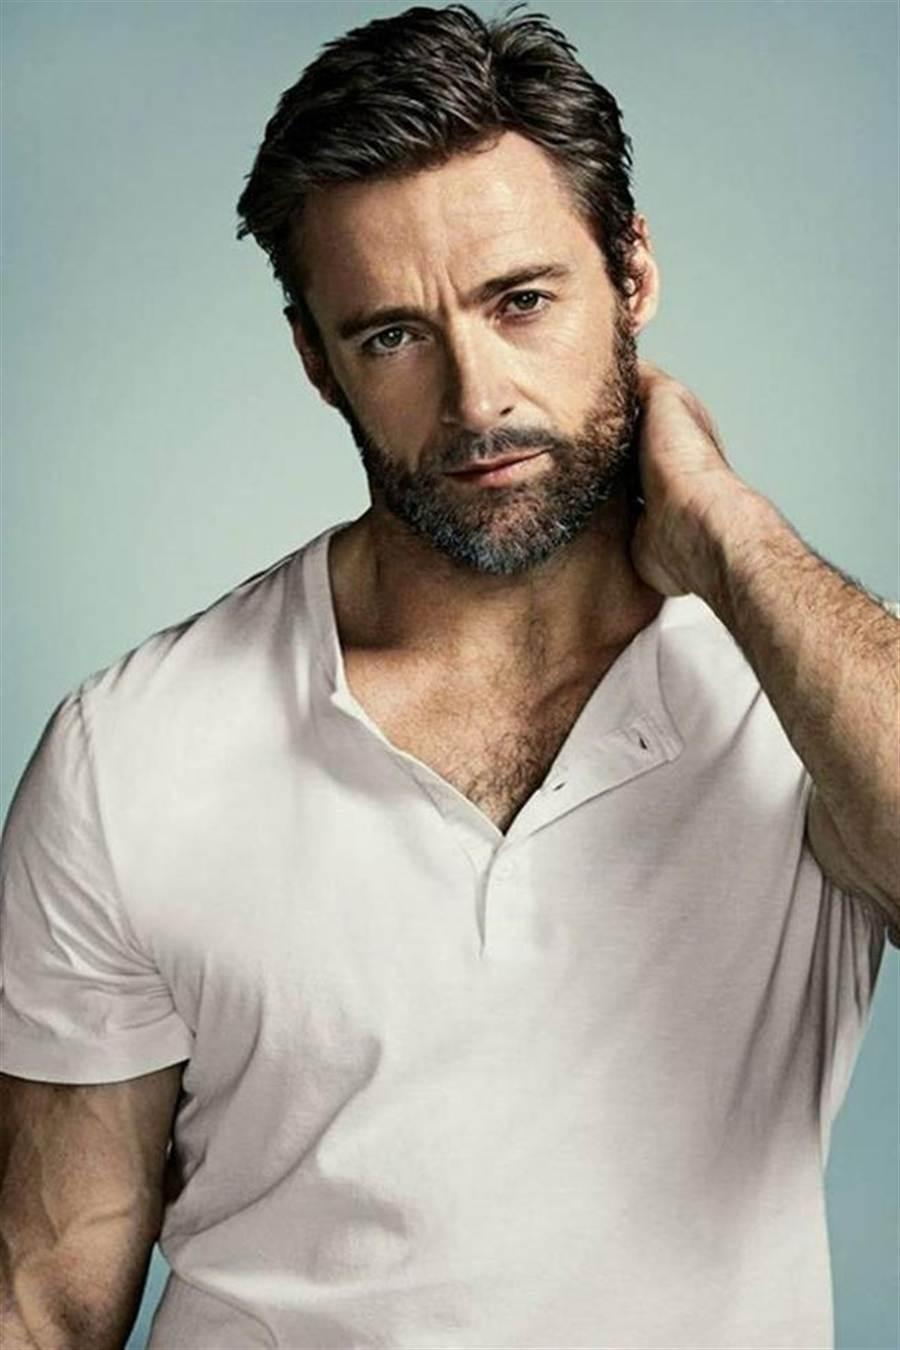 Hugh Jackman attractive full beard style